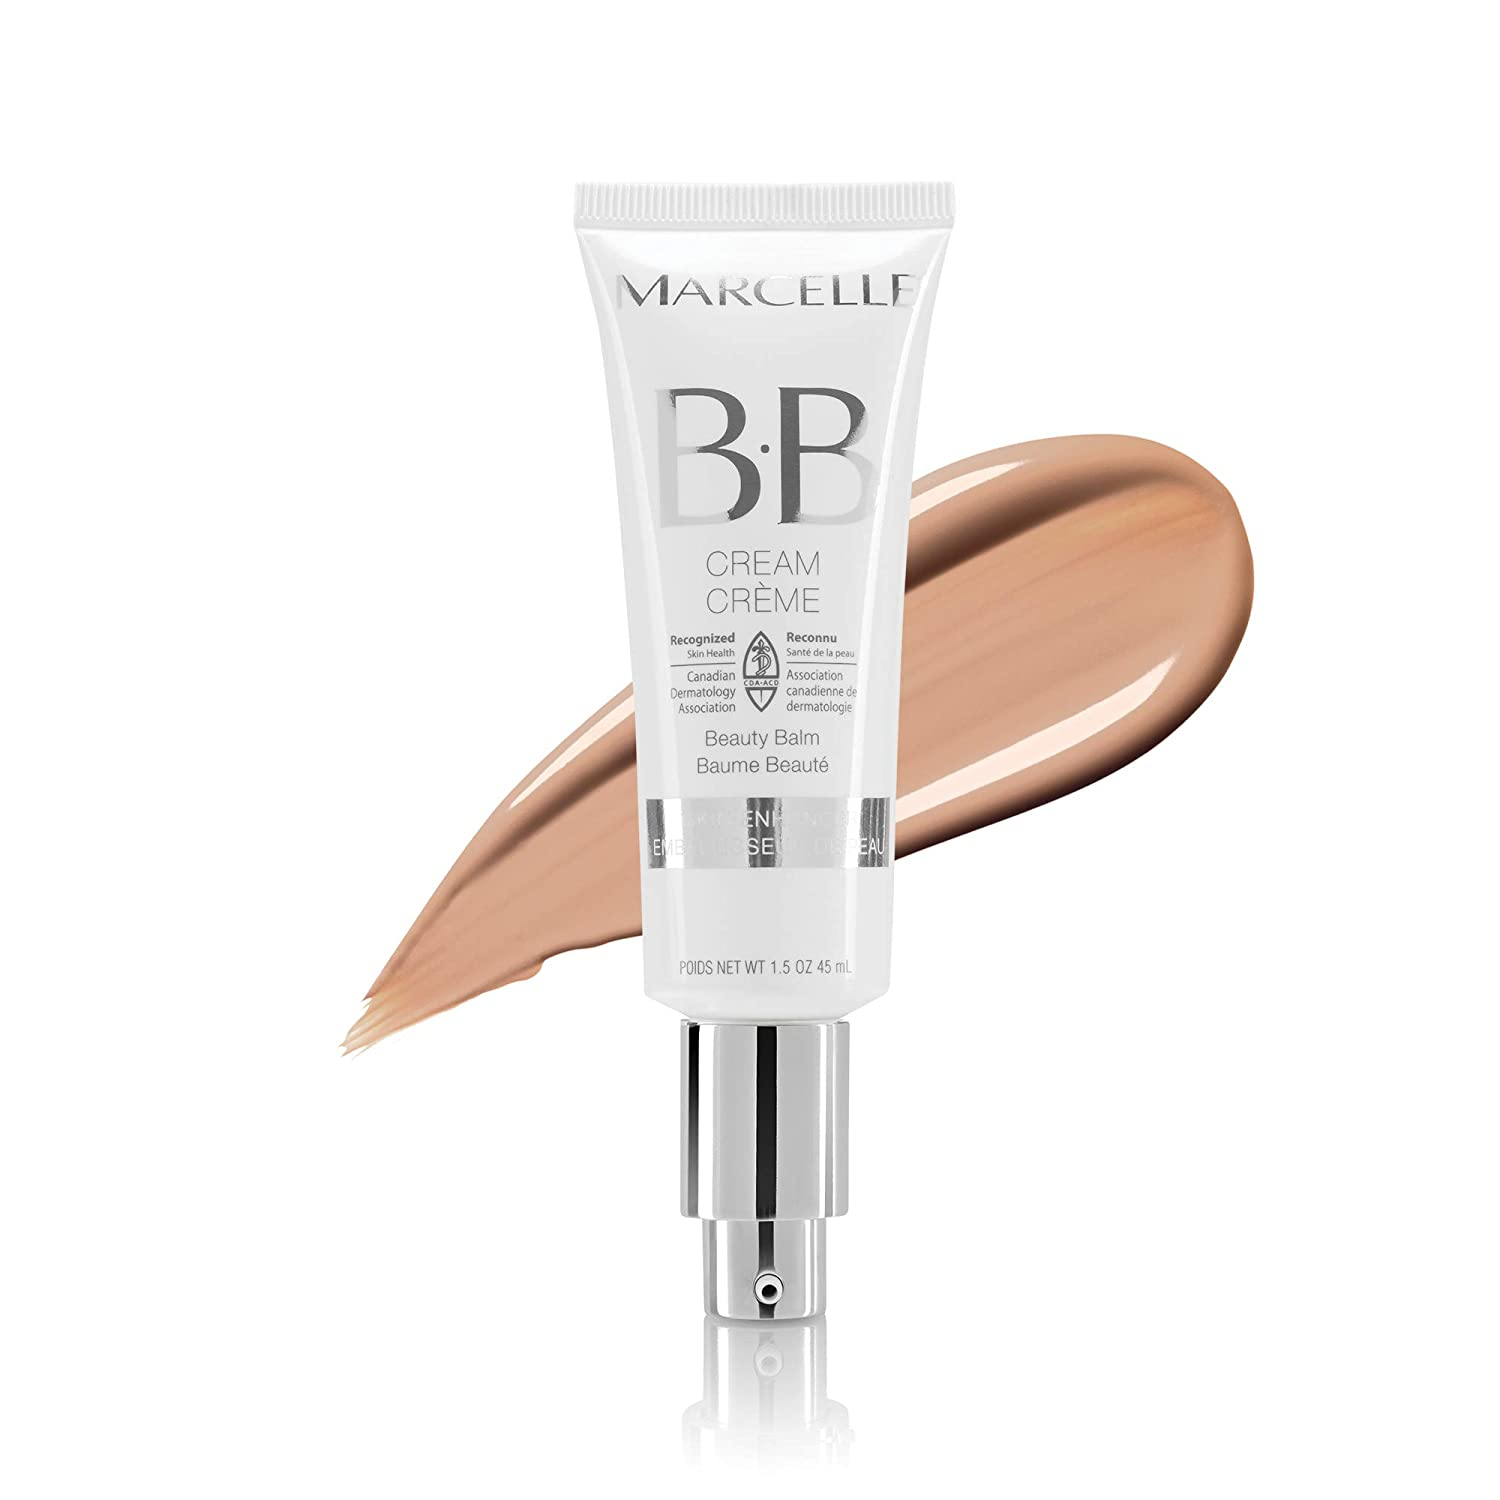 Marcelle BB Cream Beauty Balm, Medium, Hypoallergenic and Fragrance-Free, 1;5 Ounces